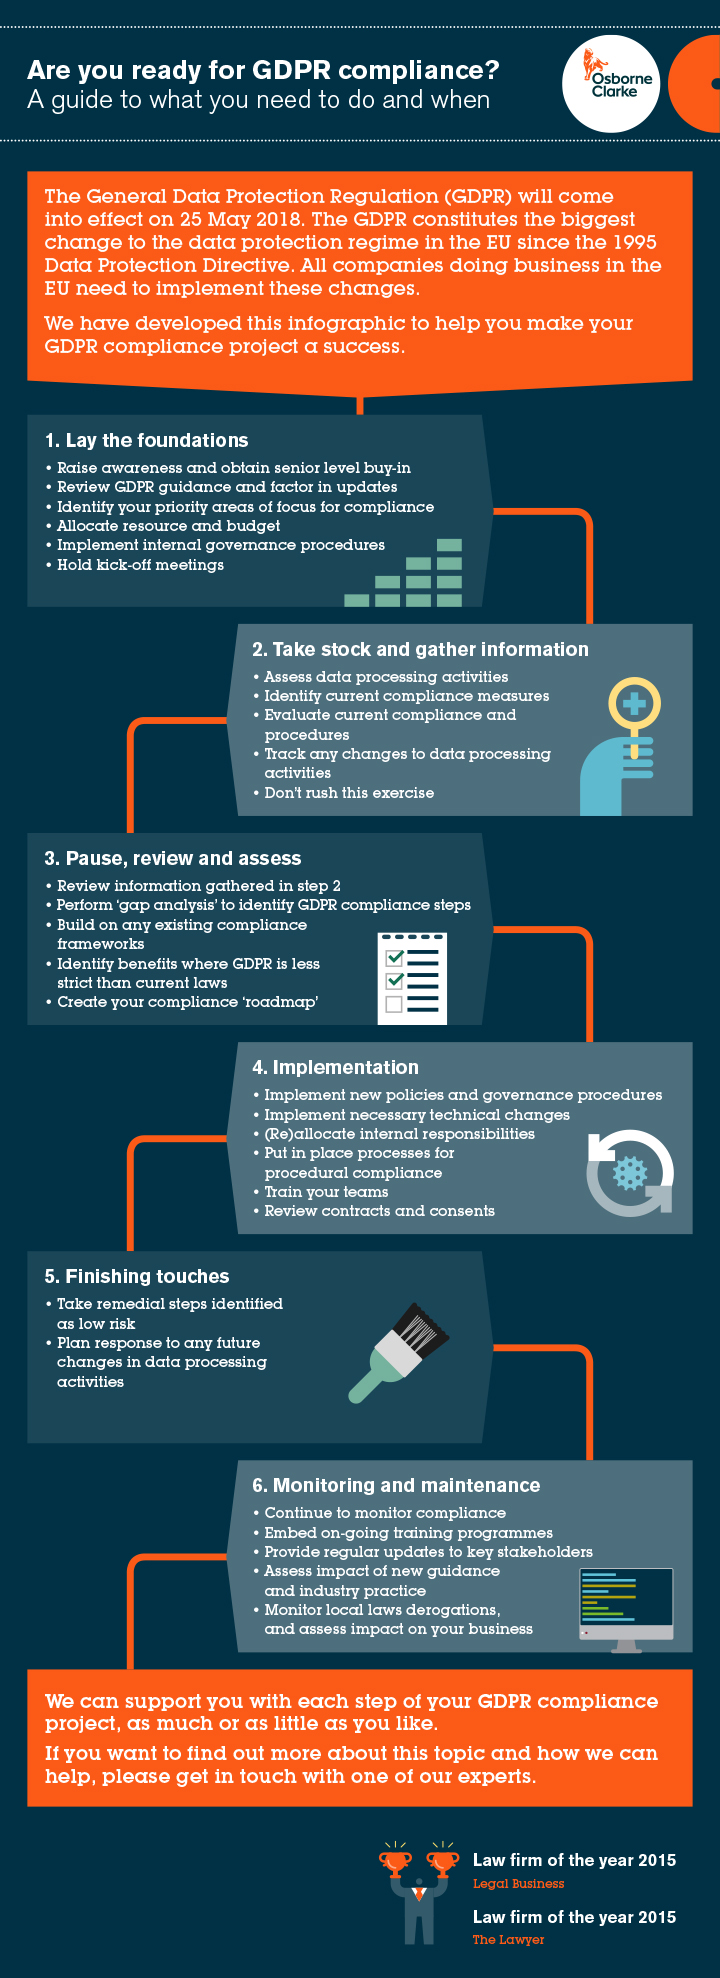 GDPR guidelines embedded in the infographic in 6 steps